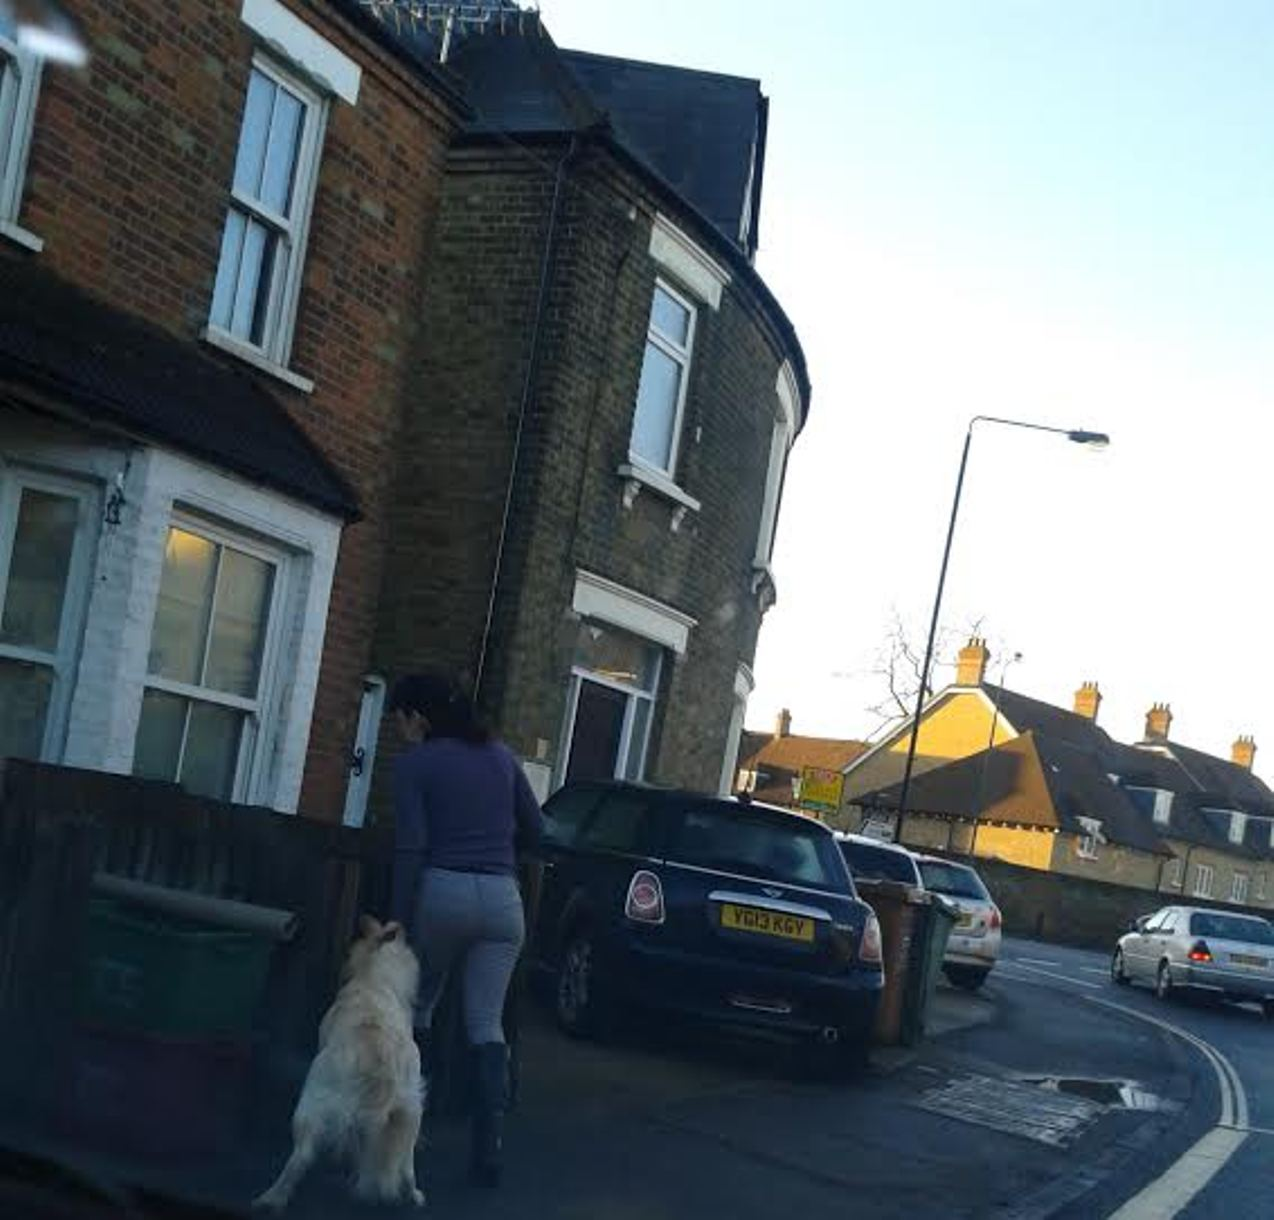 PICTURED: Golden retriever on the loose in Bexley village